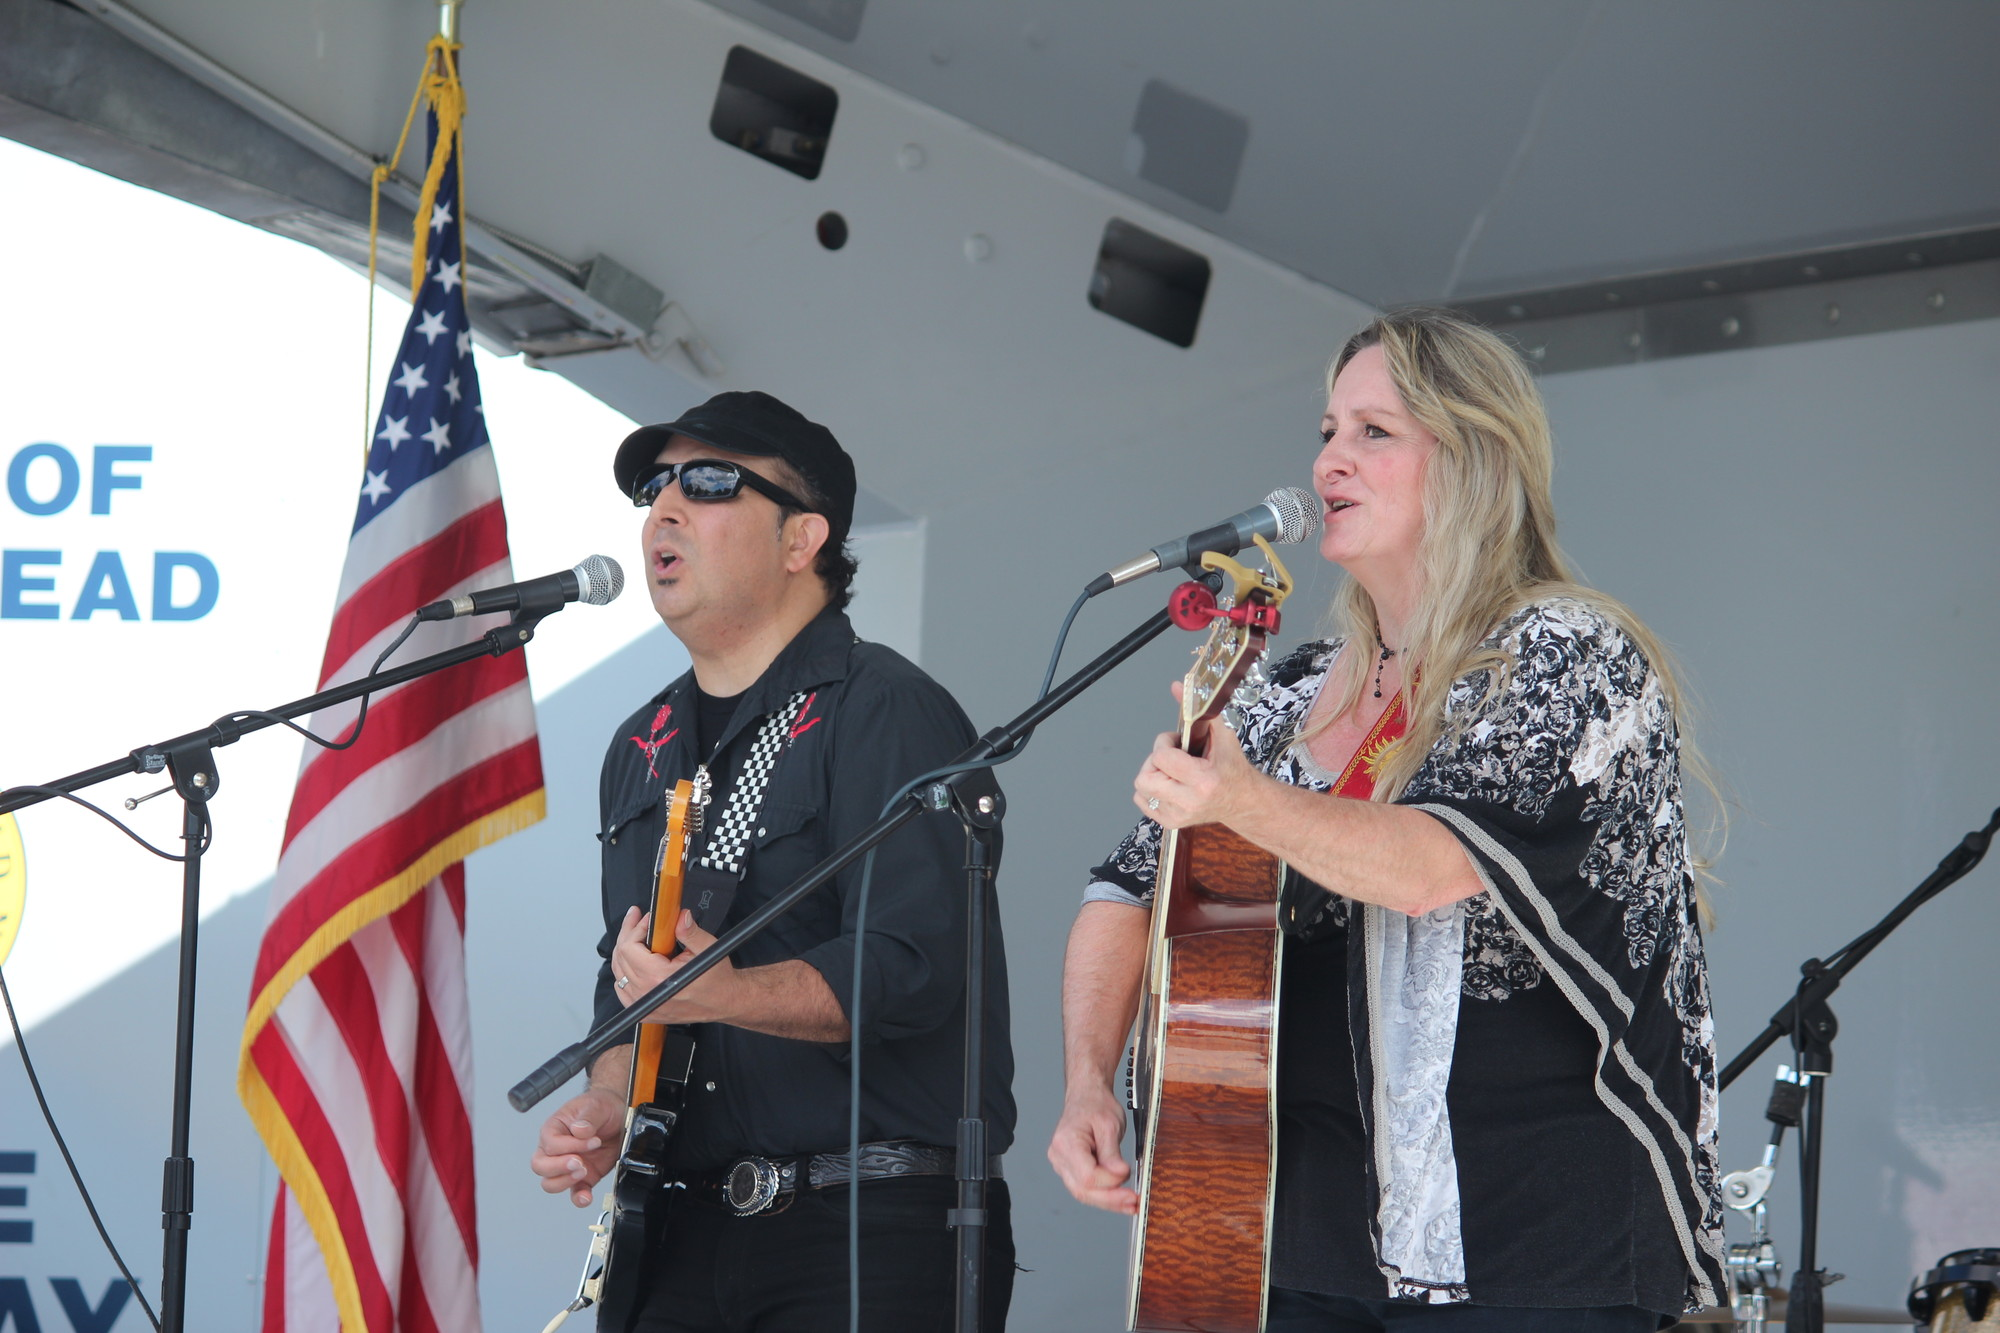 Arts Below Sunrise festival featured many attractions, including several musical acts such as Chris James and Annie Marks.